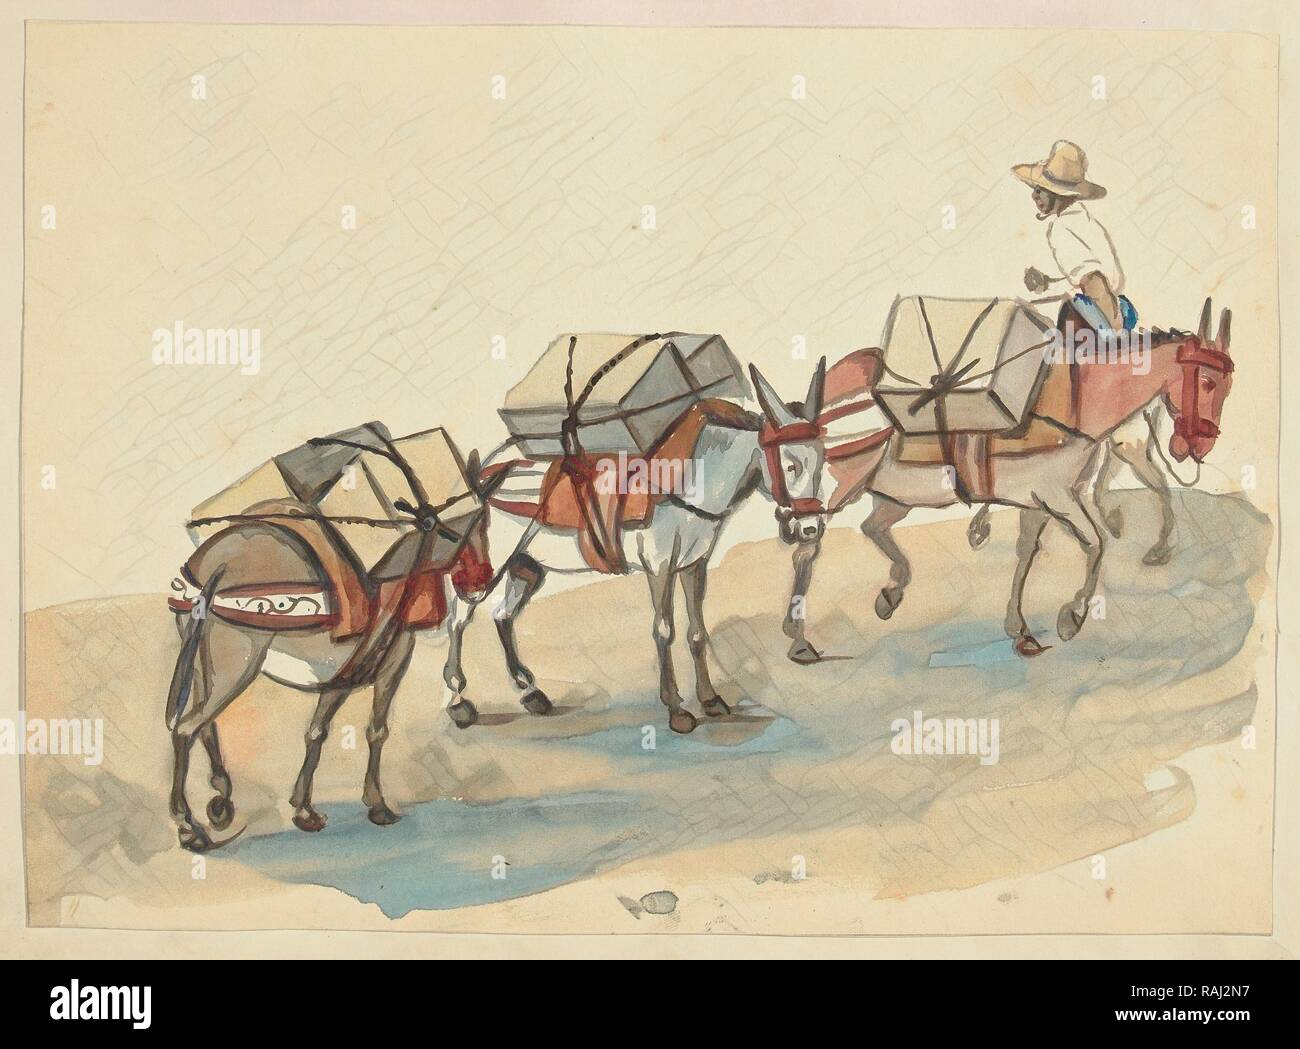 El Arriero, mules laden with cases of goods, led by a mulateer, Lima costumes, ca. 1853, Fierro, Pancho, 1803-1879 reimagined - Stock Image